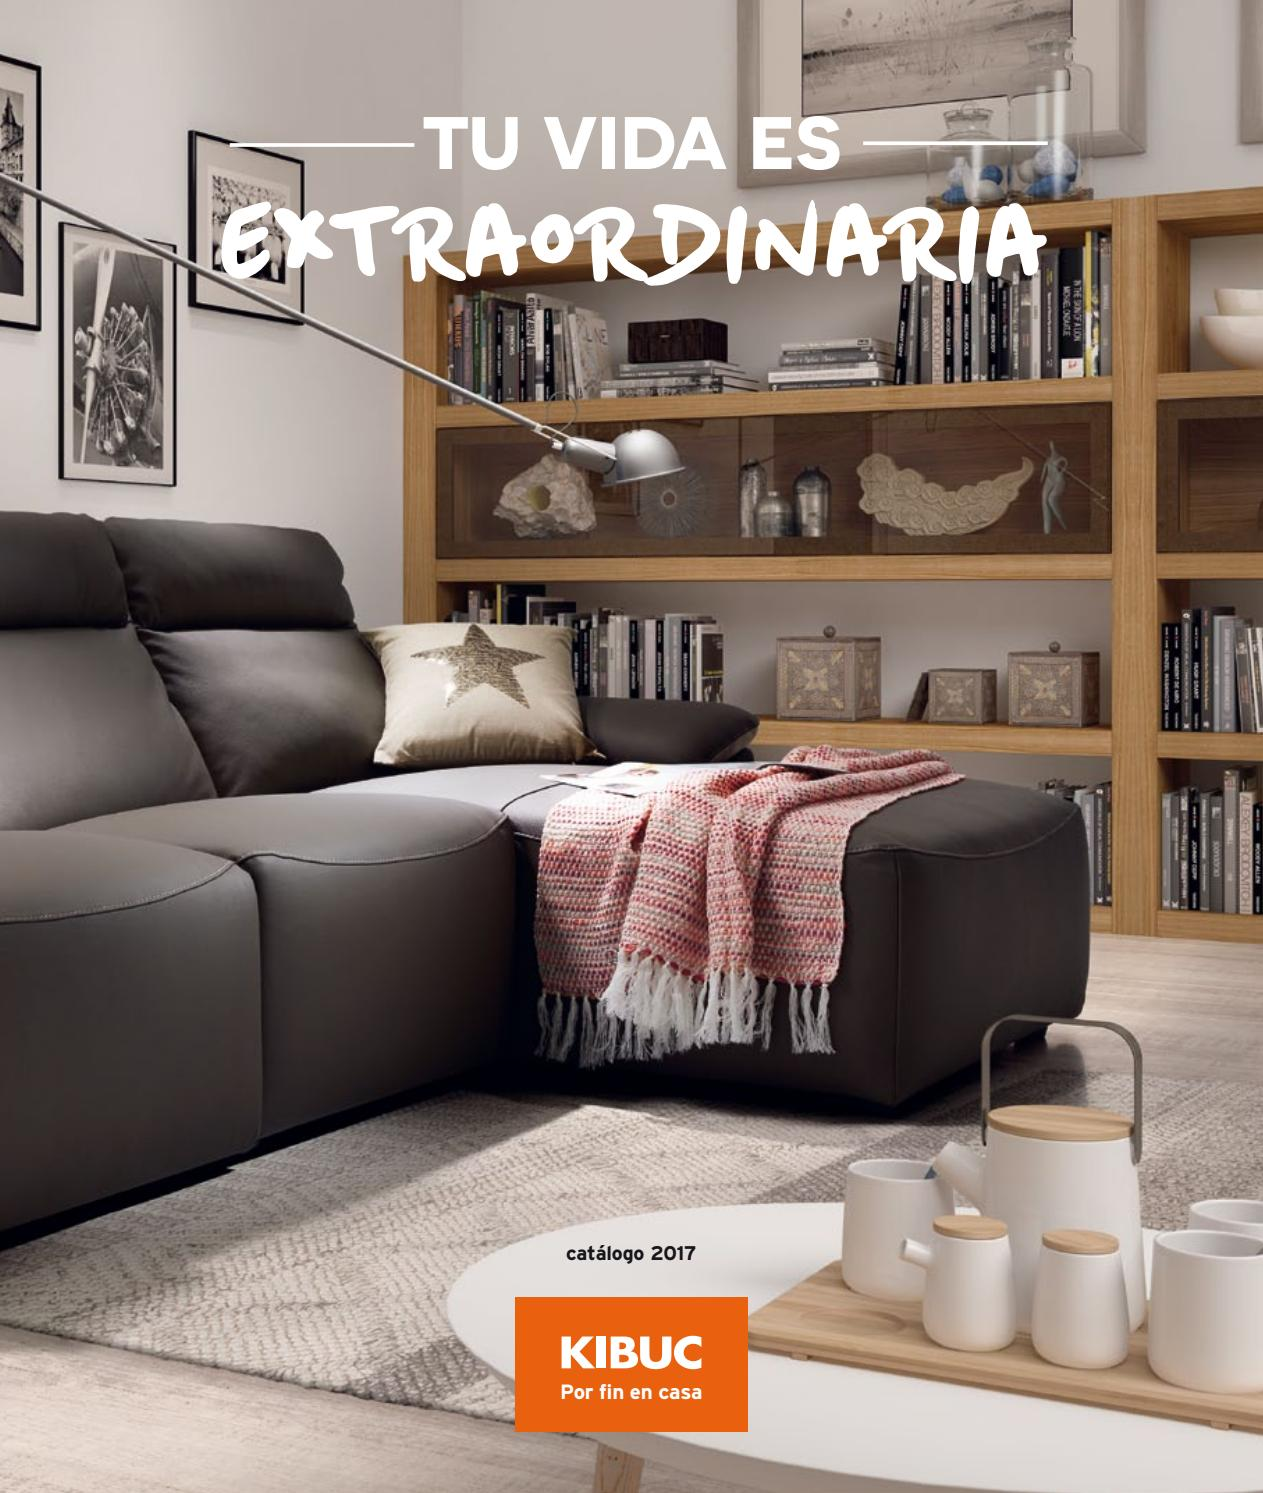 Kibuc catalogo general 2016 17 by kibuc issuu for Muebles kibuc